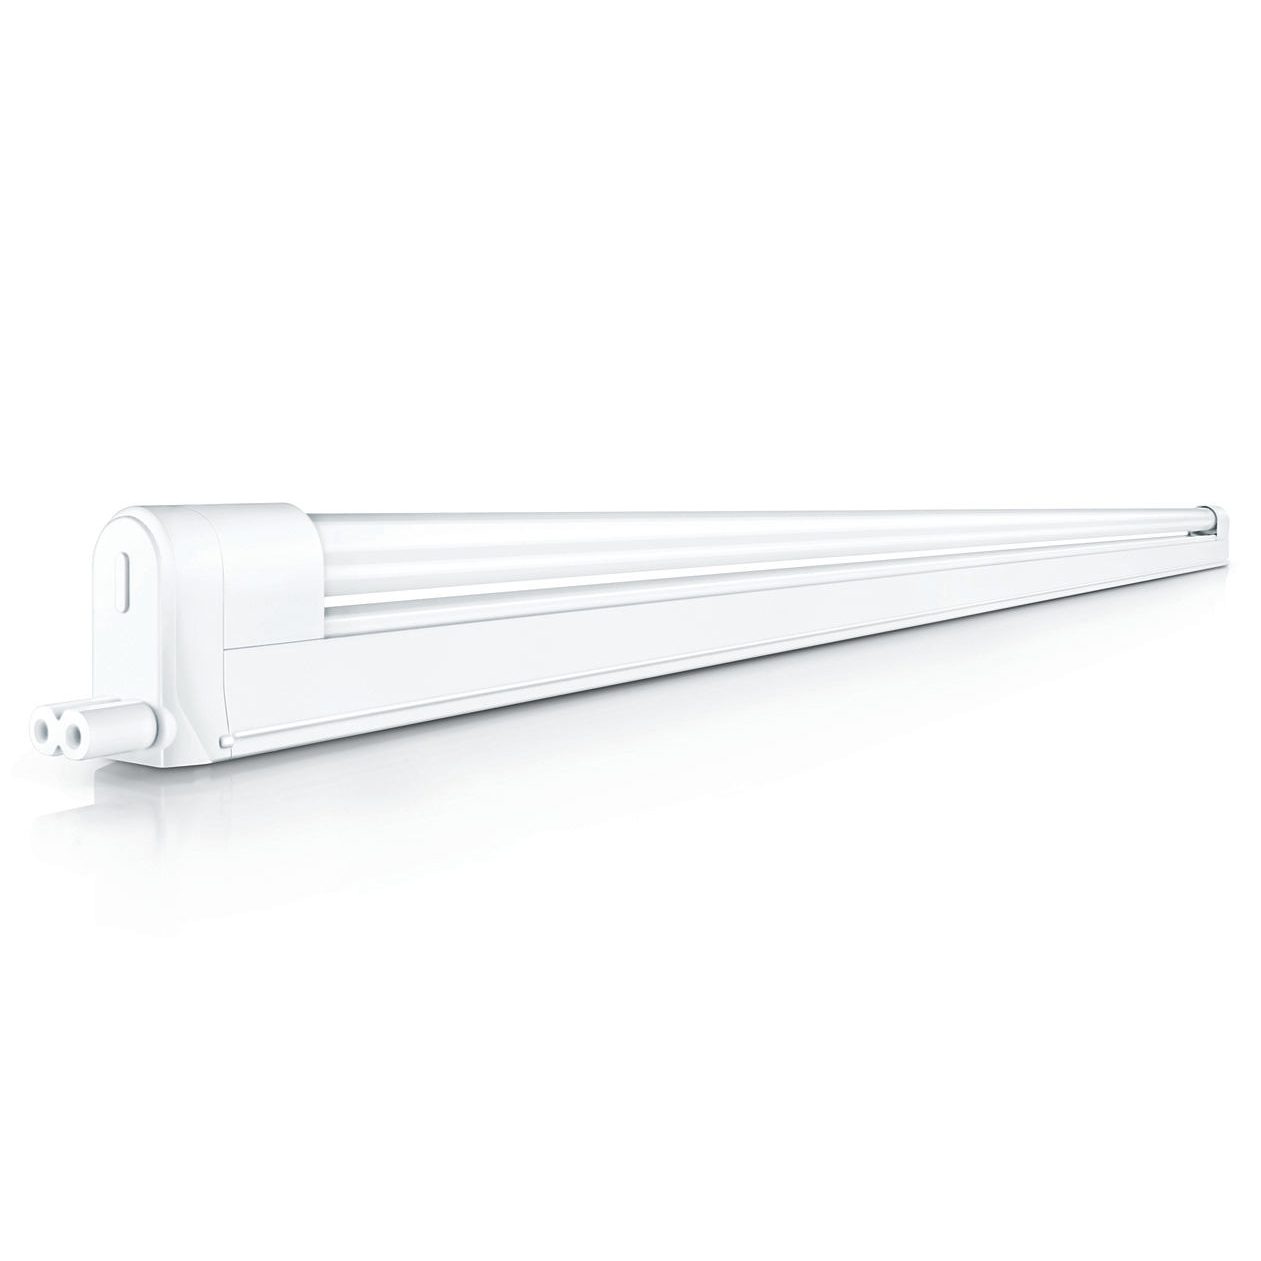 Philips T5 4 Essential Linear Fluorescent Batten Day